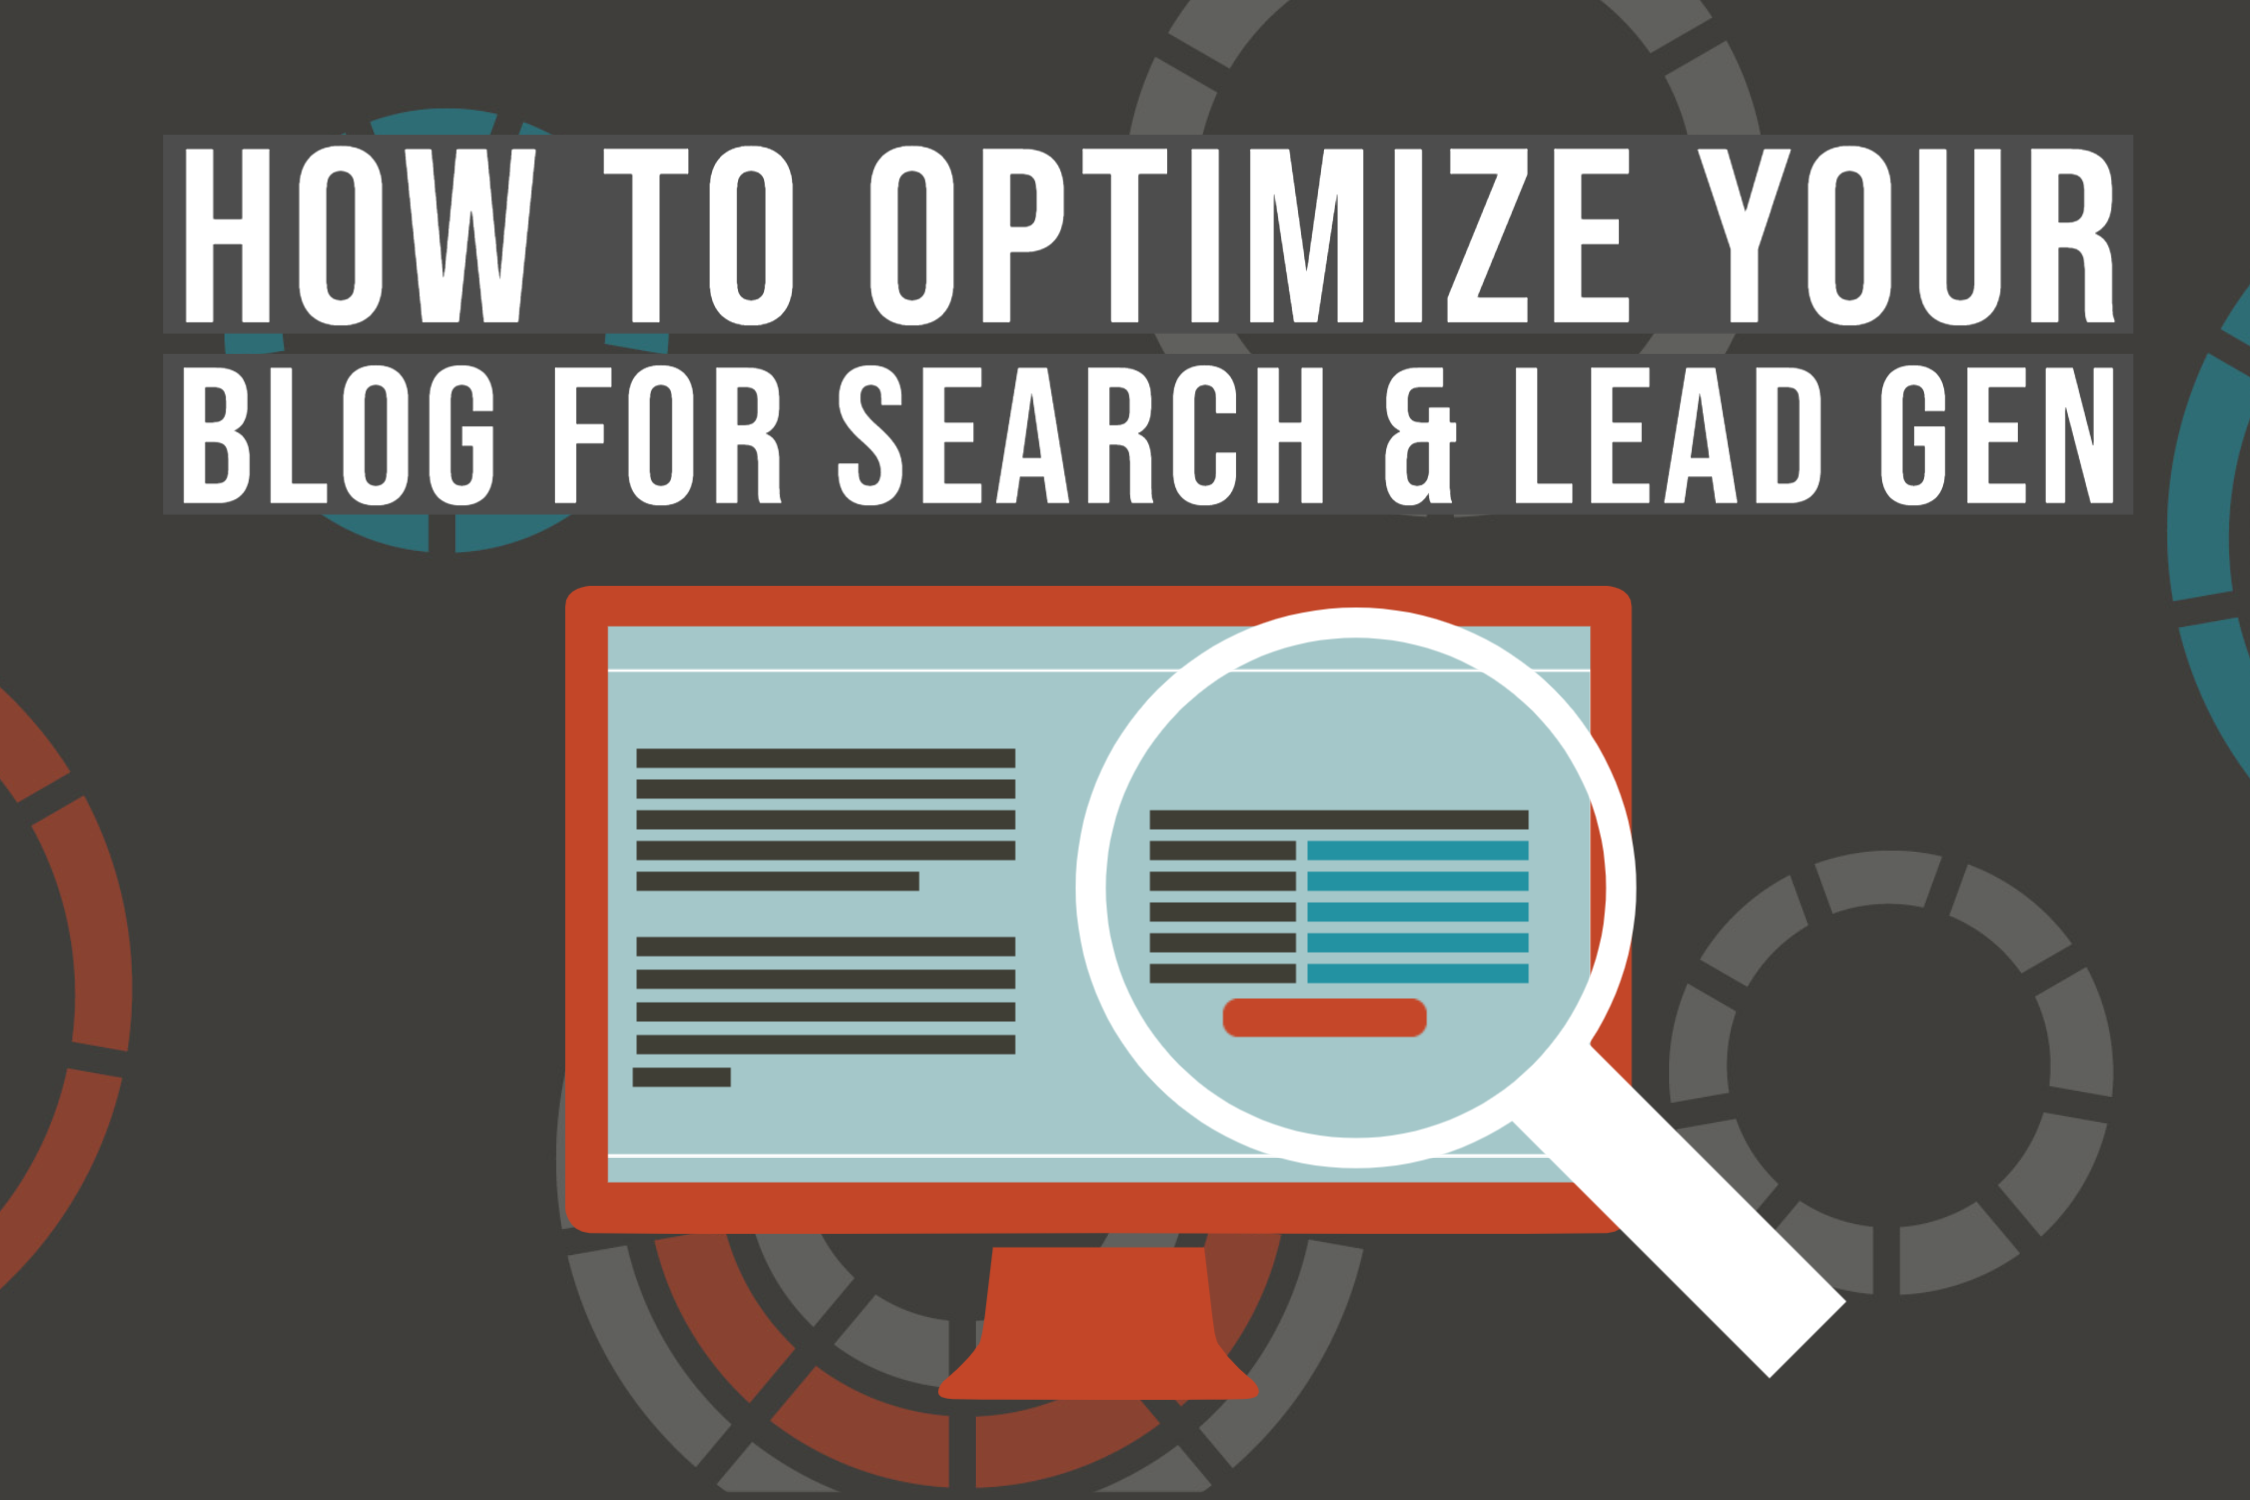 How to Optimize your blog for search and lead generation